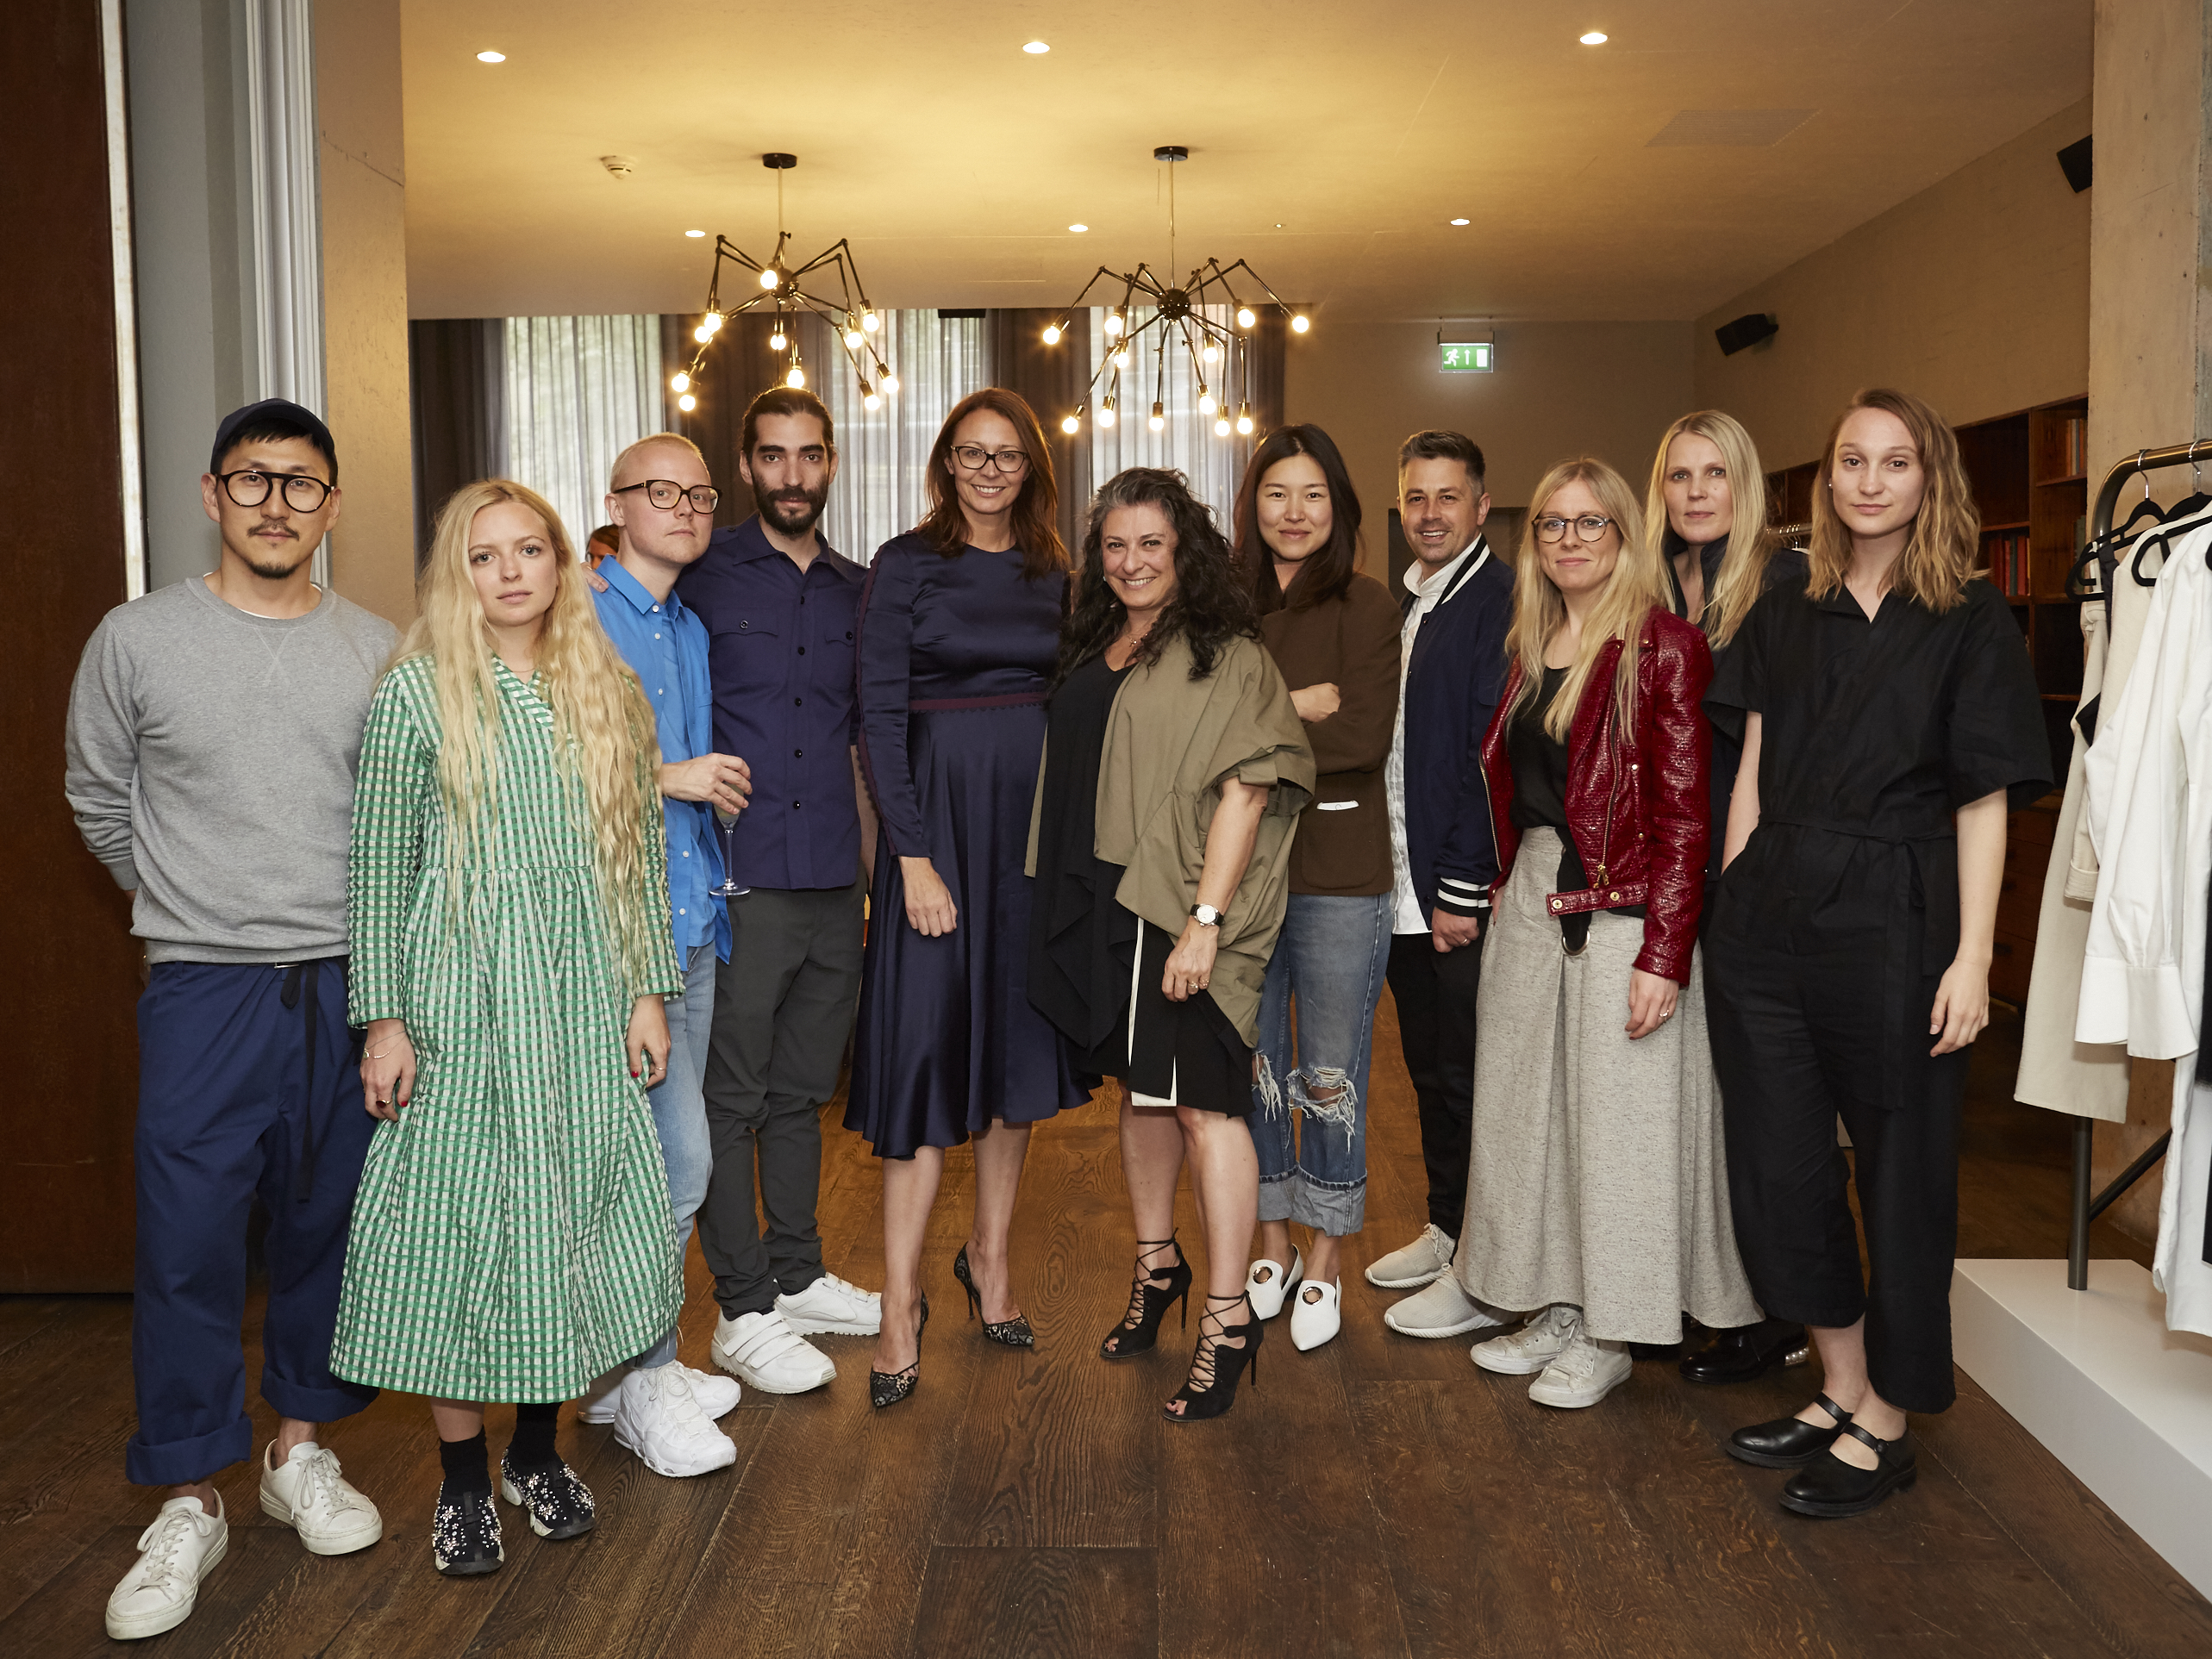 Designers preview their collection at The Hoxton Collective.